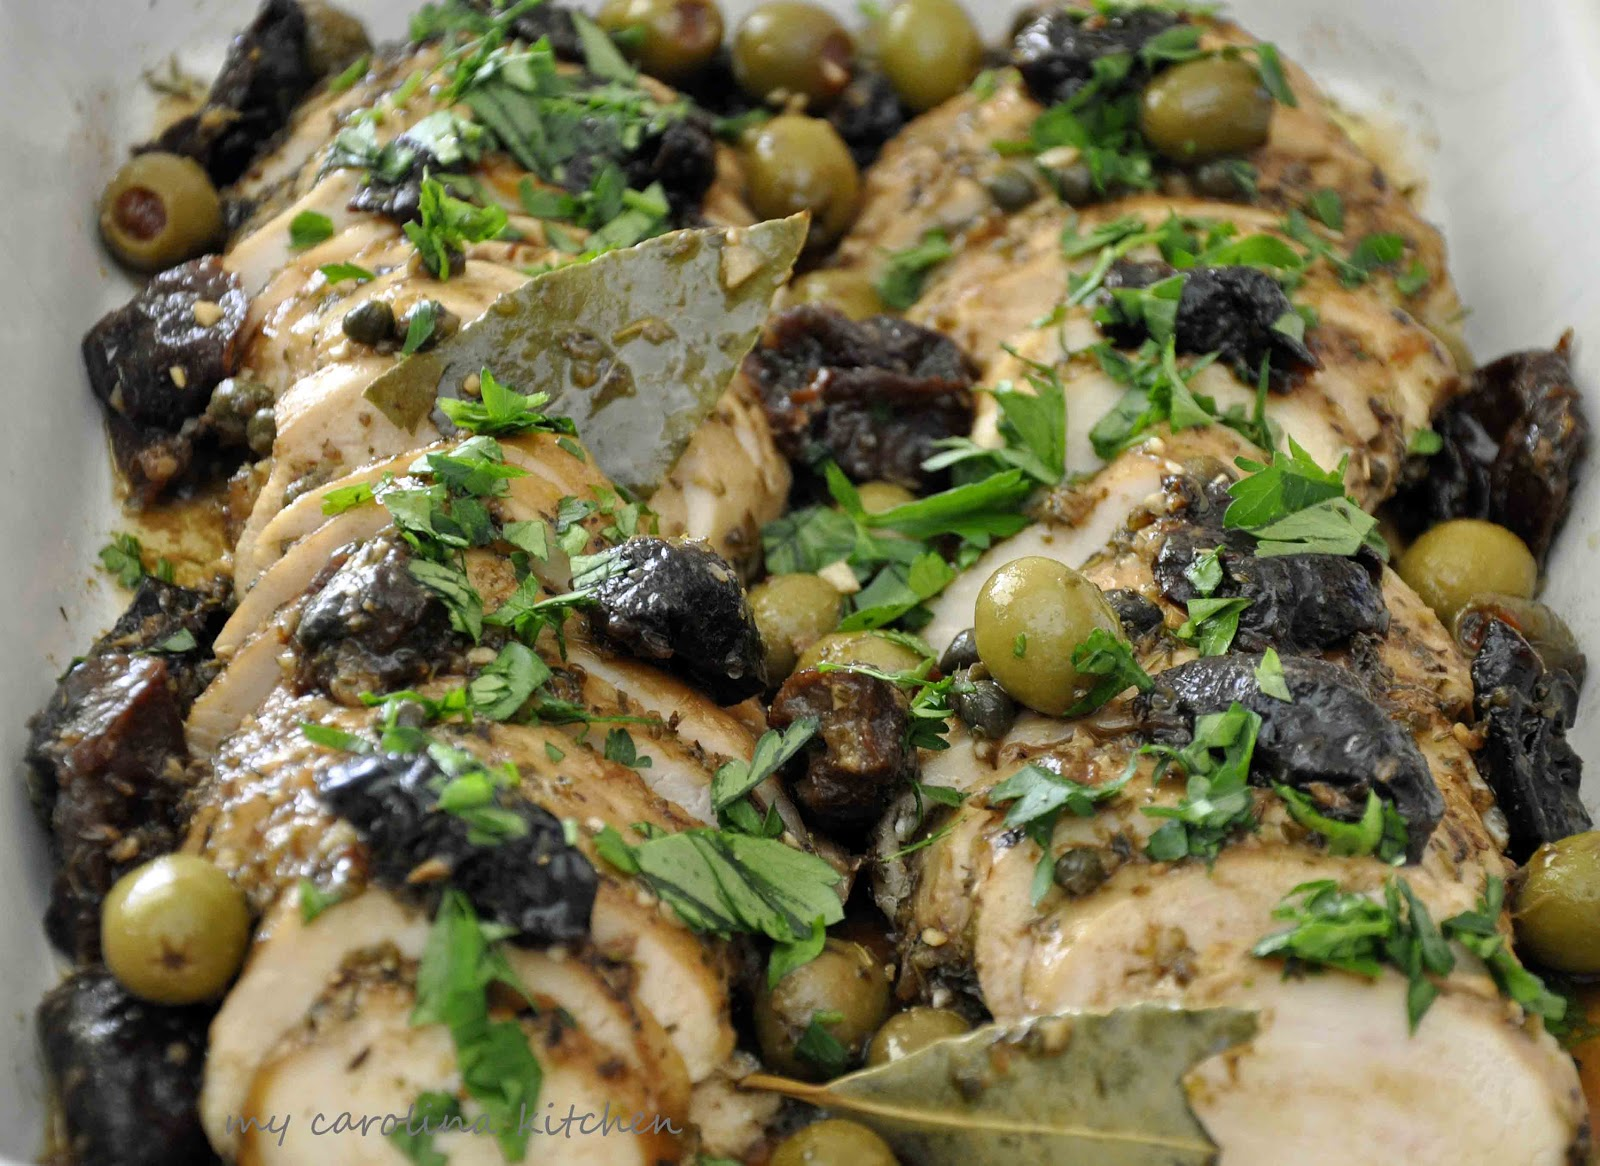 My Carolina Kitchen: Chicken Marbella recreated into ...